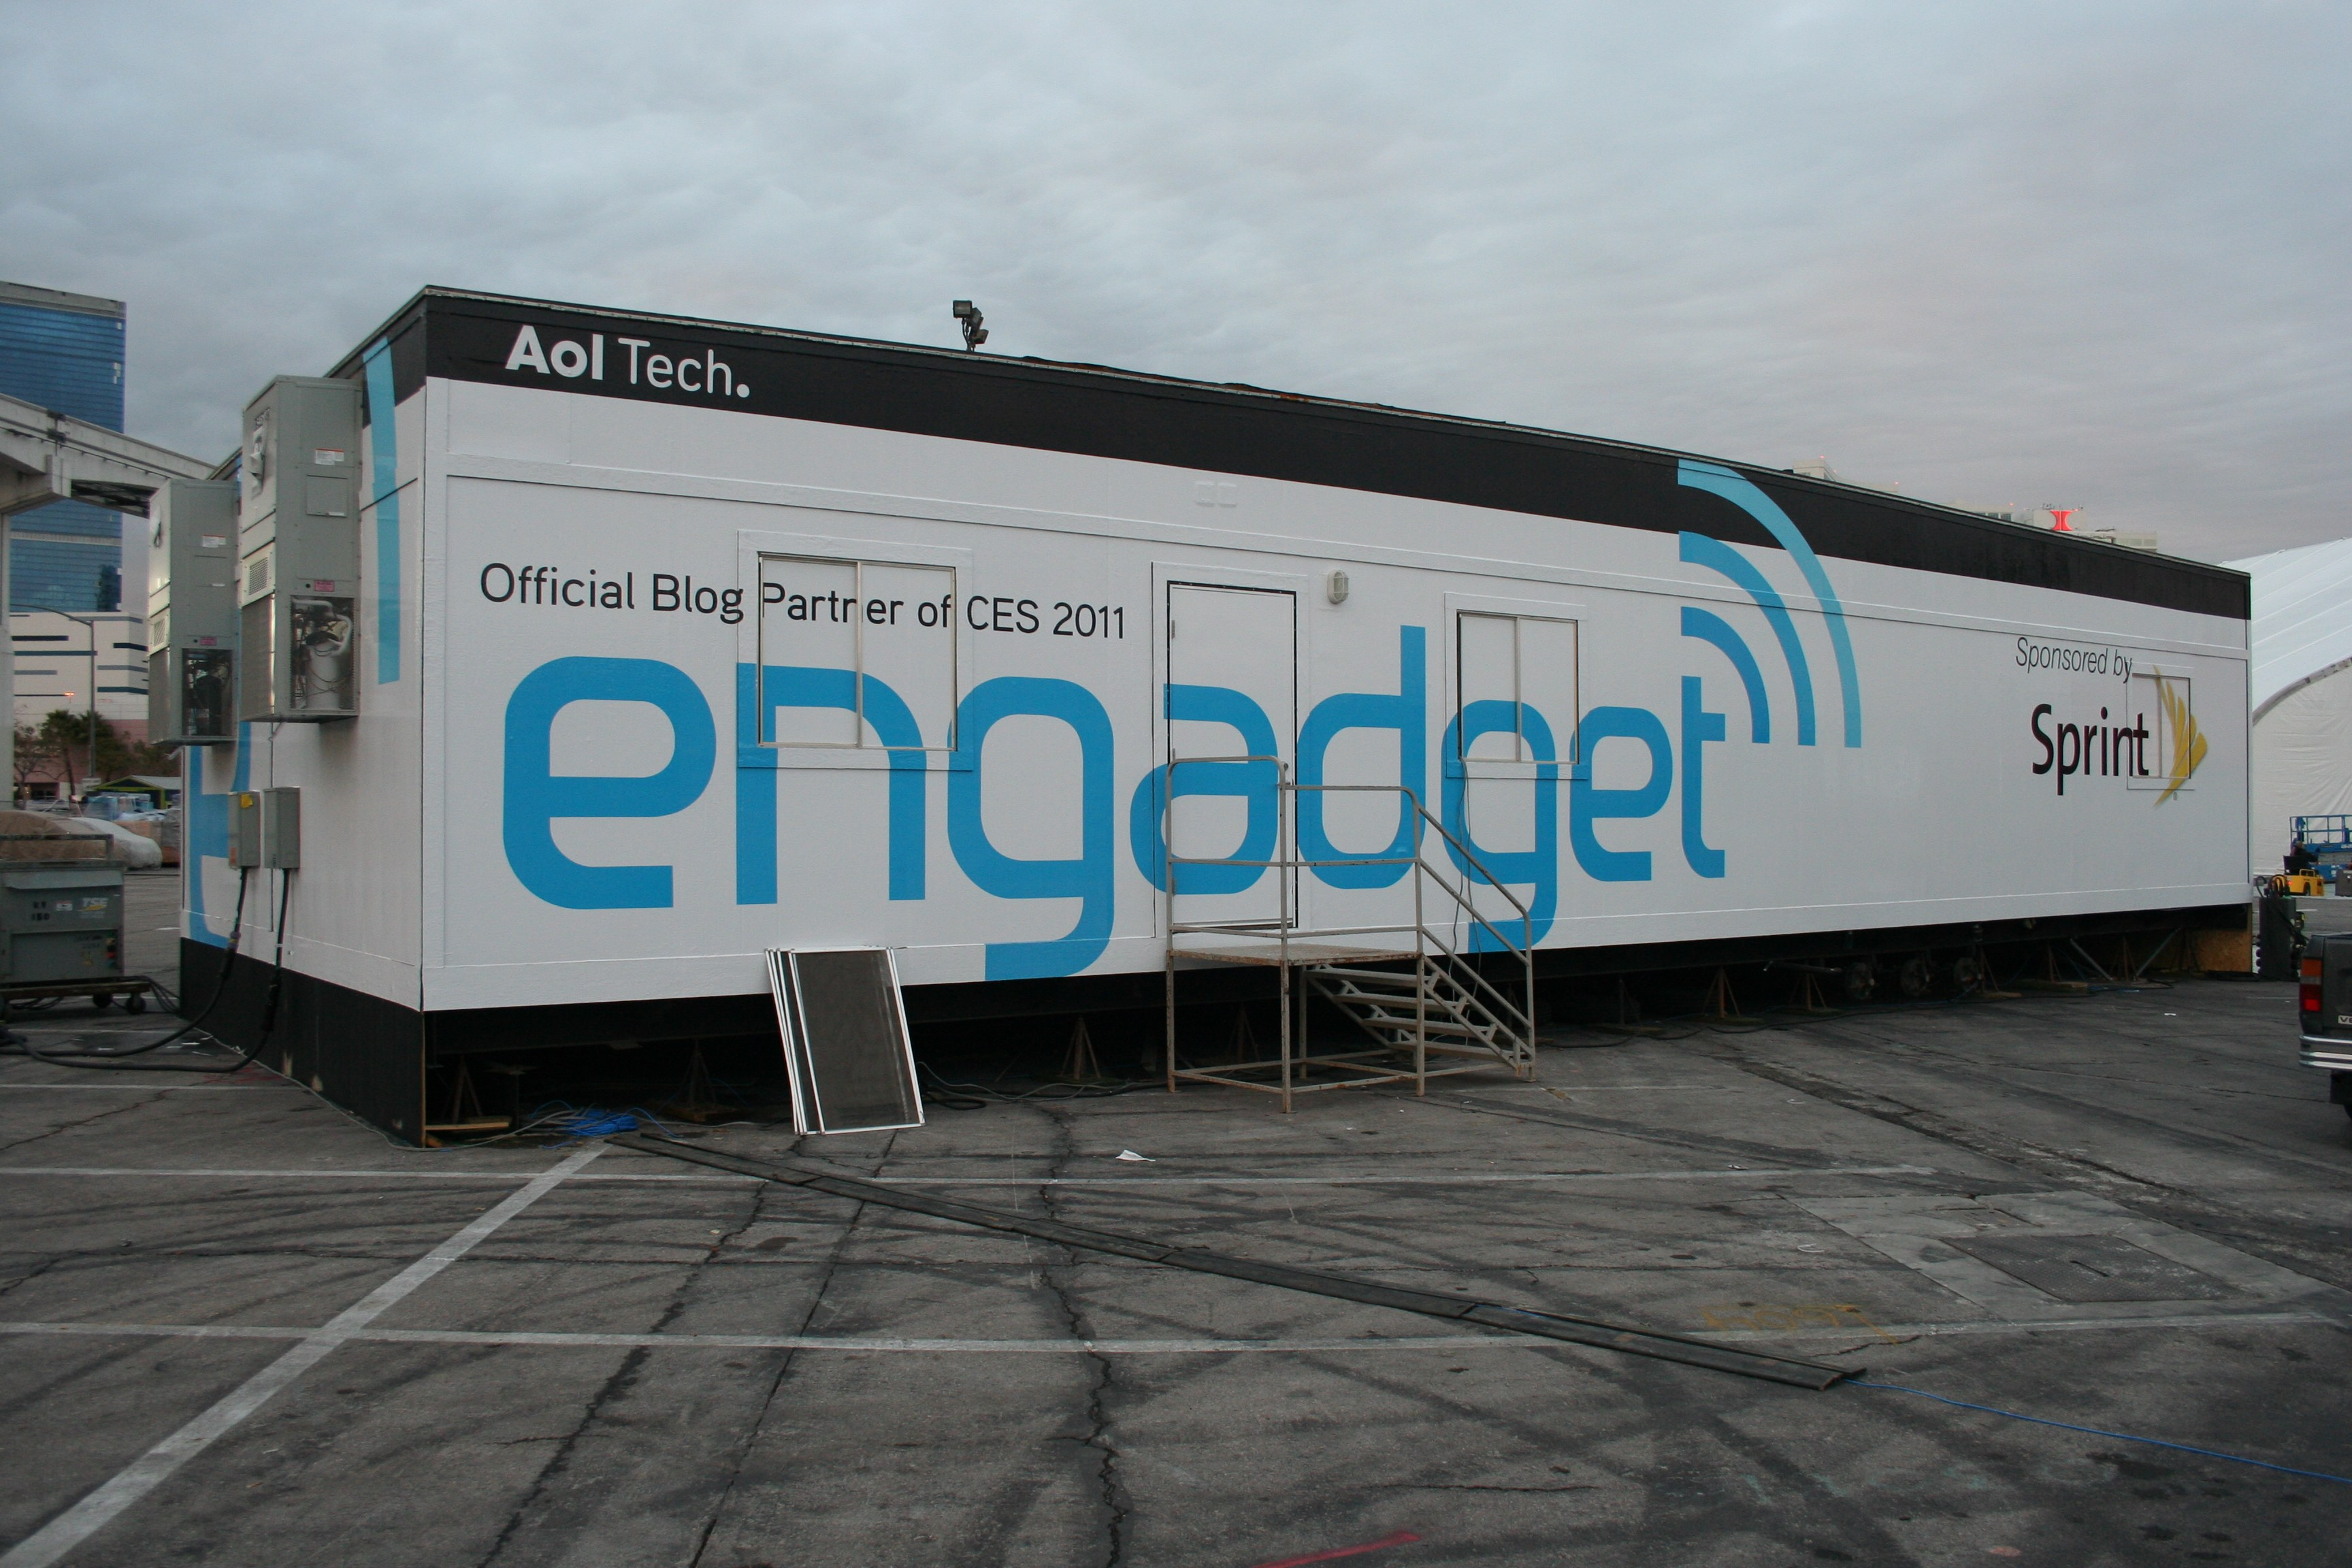 Engadget Wallpapers & Pictures